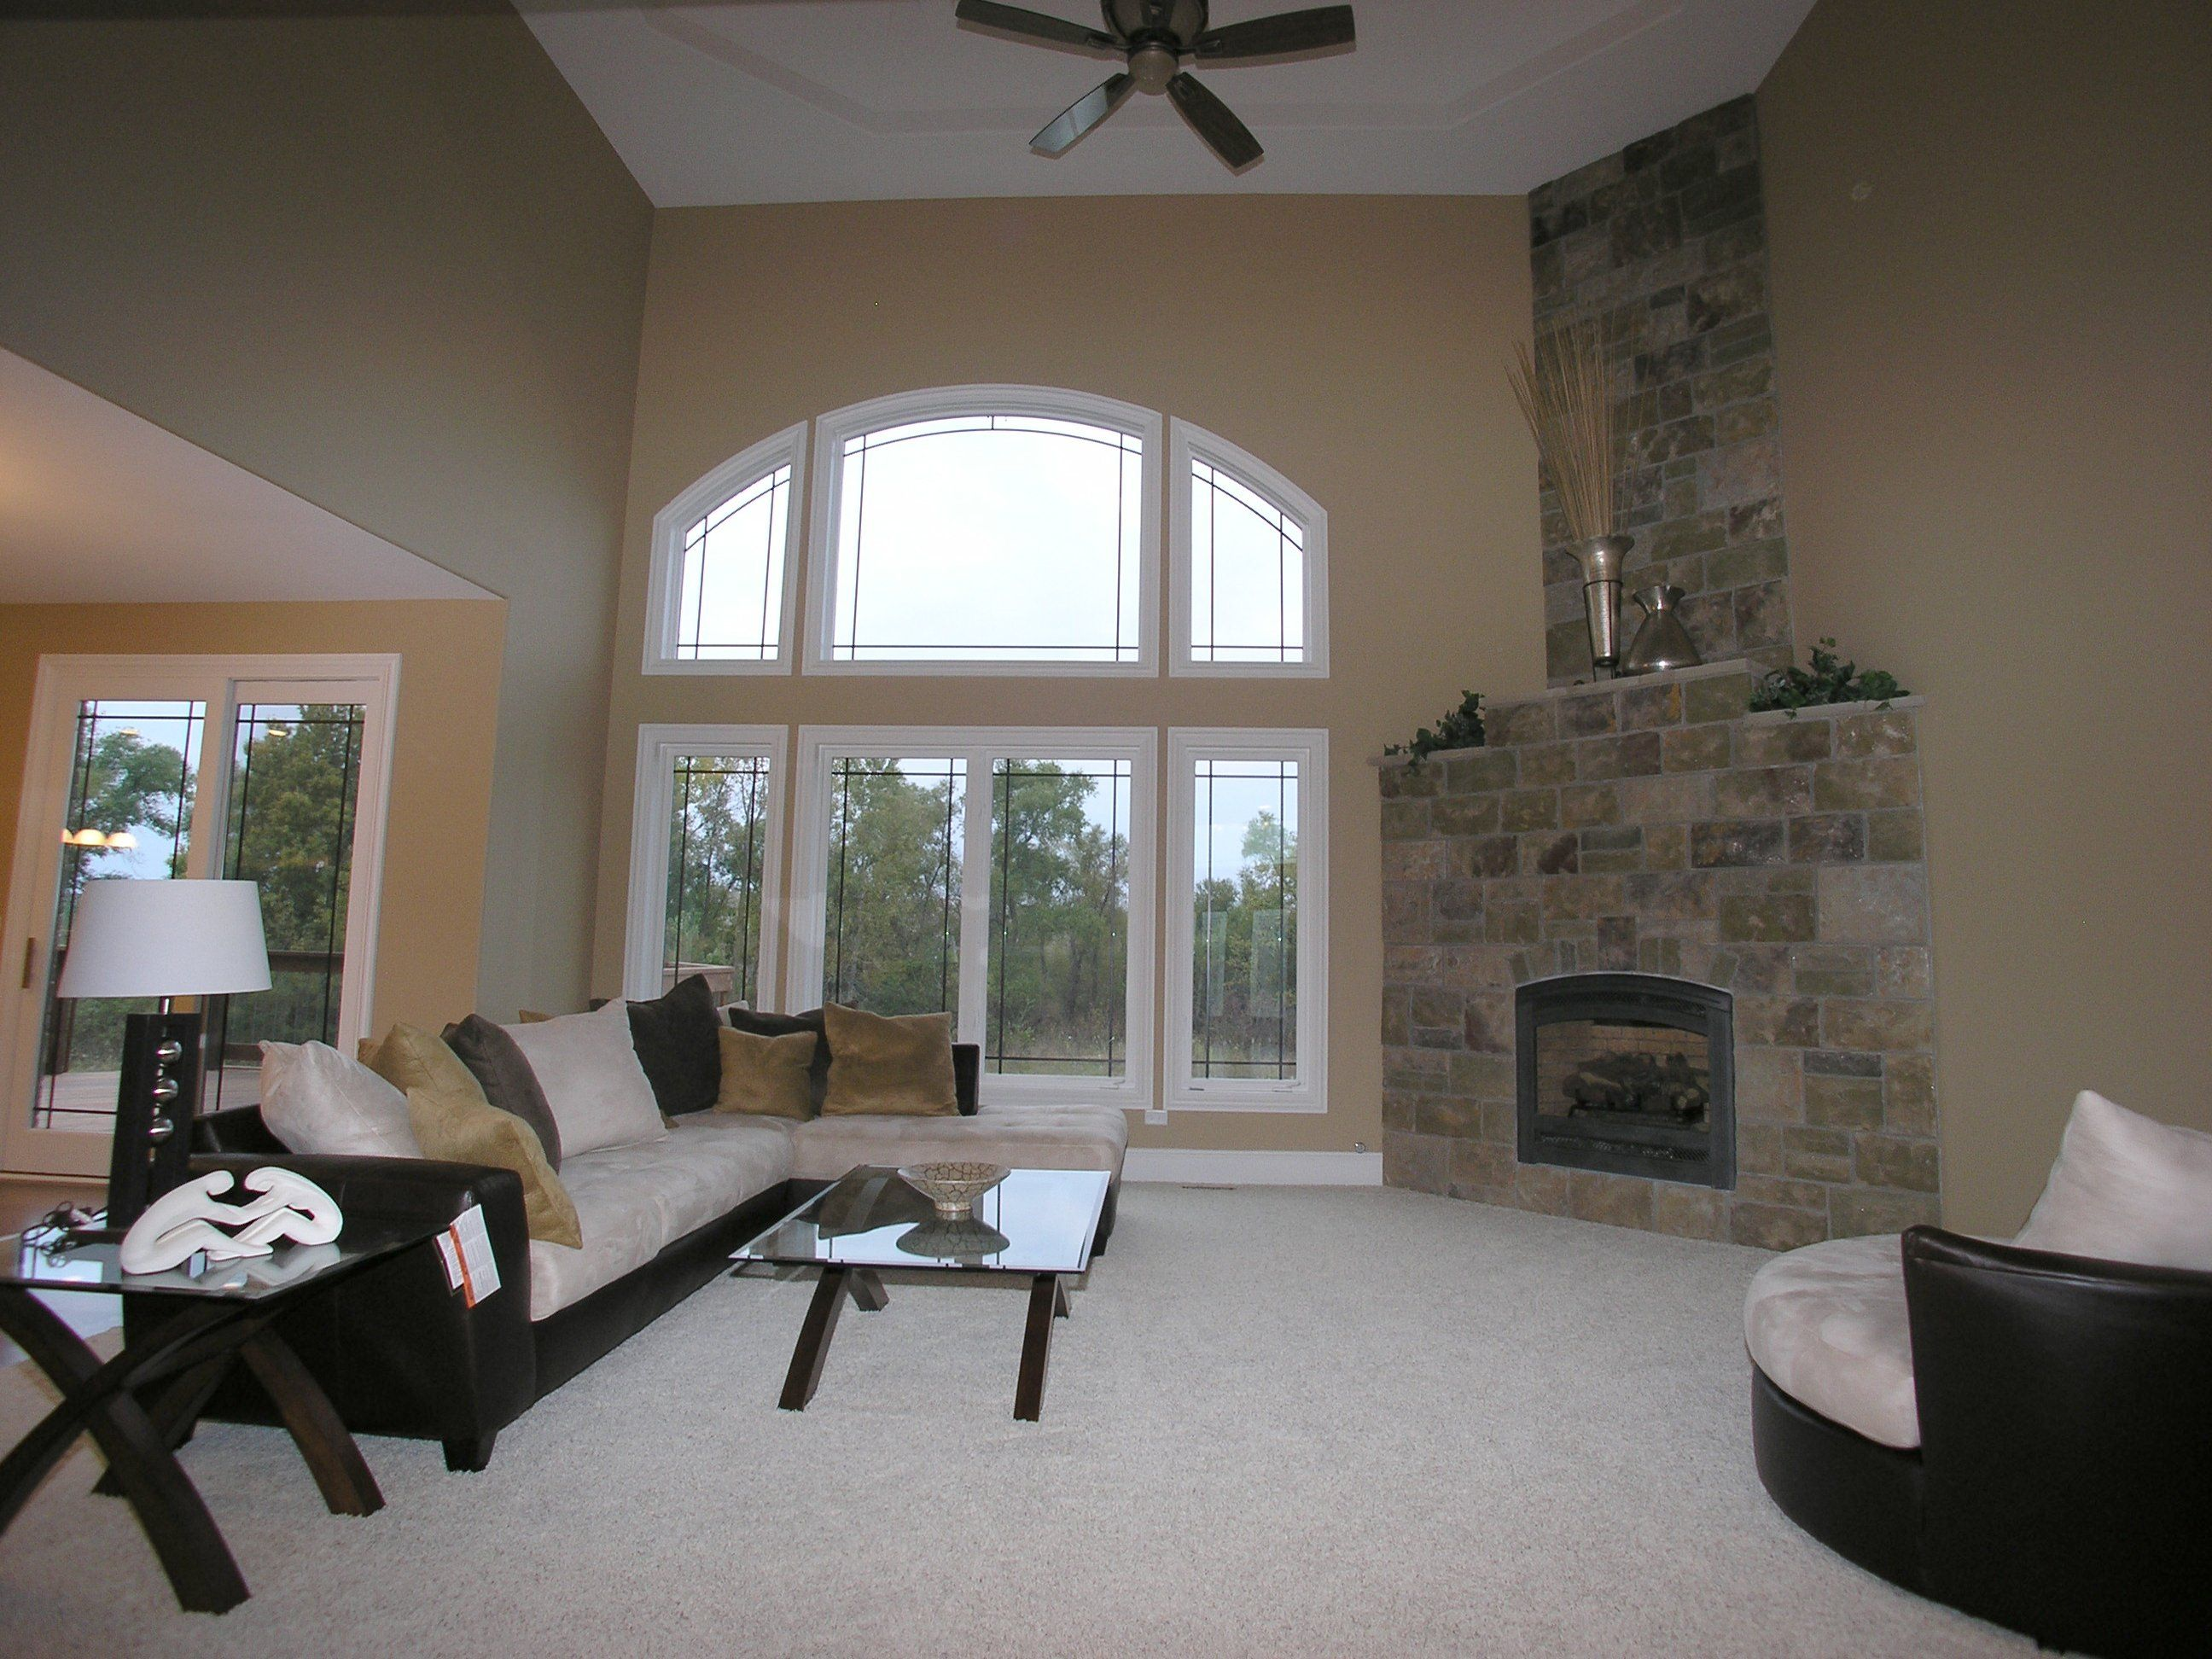 Living Room With High Ceilings Large Windows And Corner Fireplace